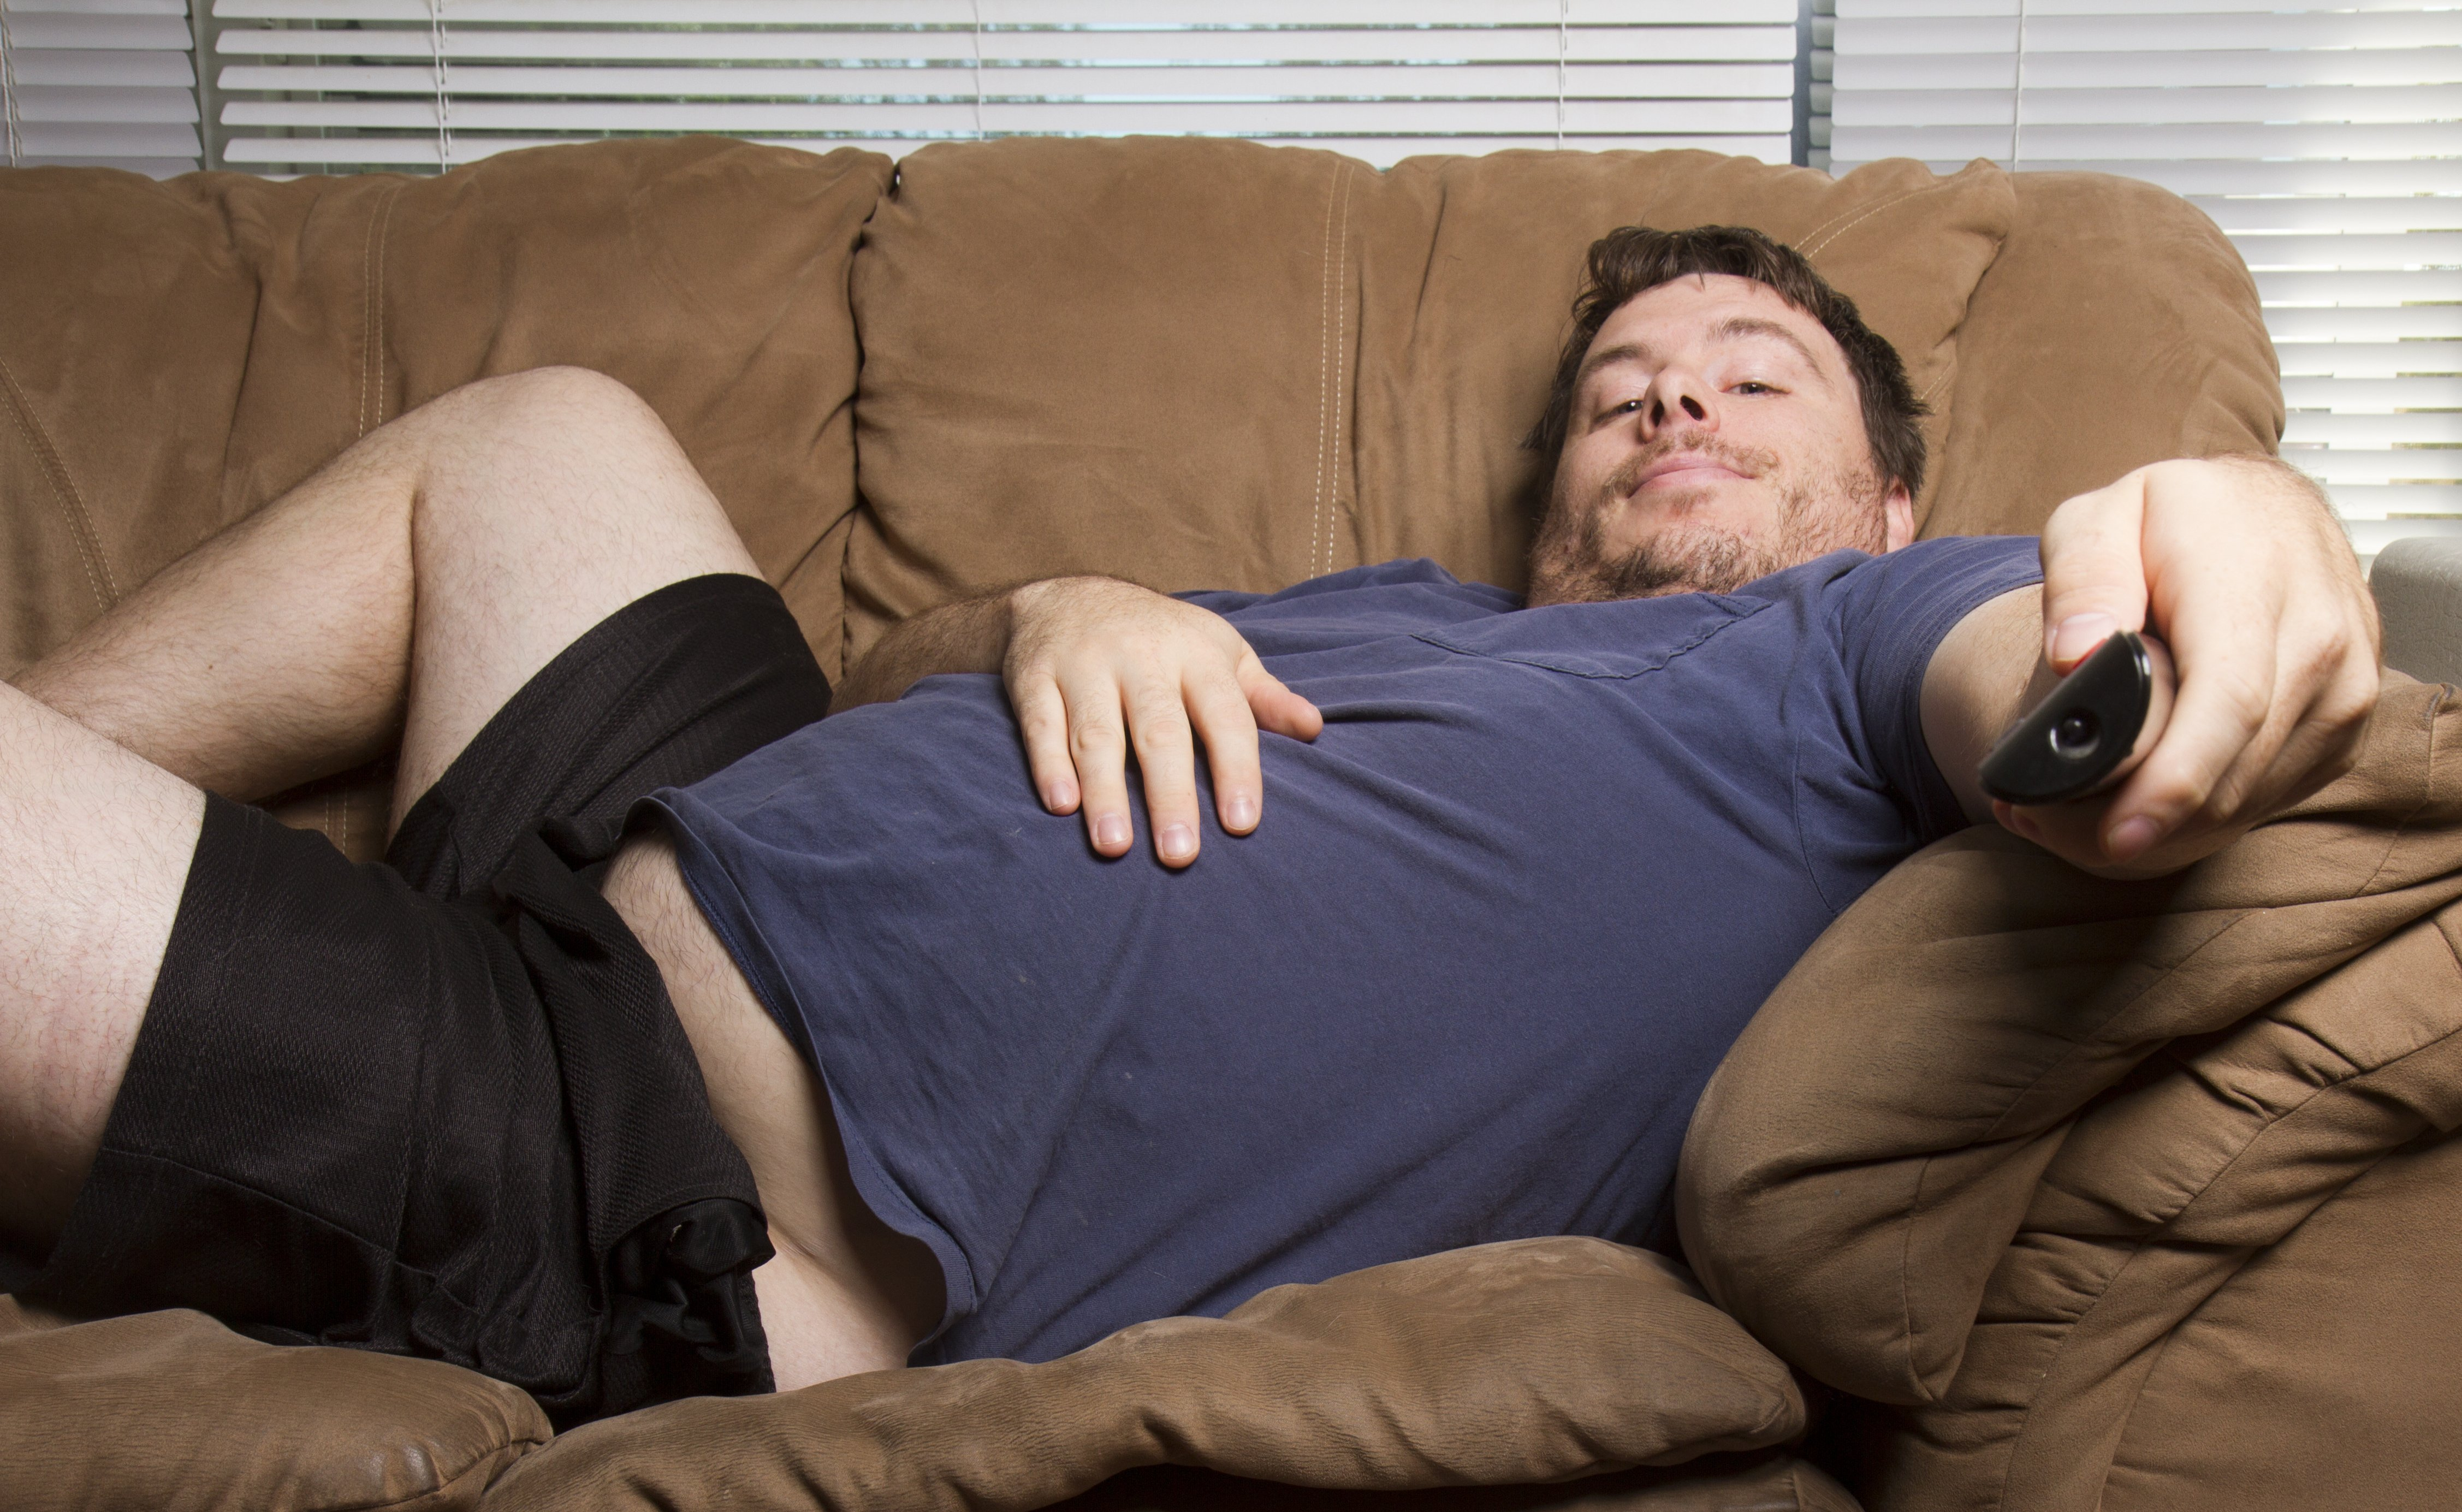 Lazy man on couch   Source: Shutterstock